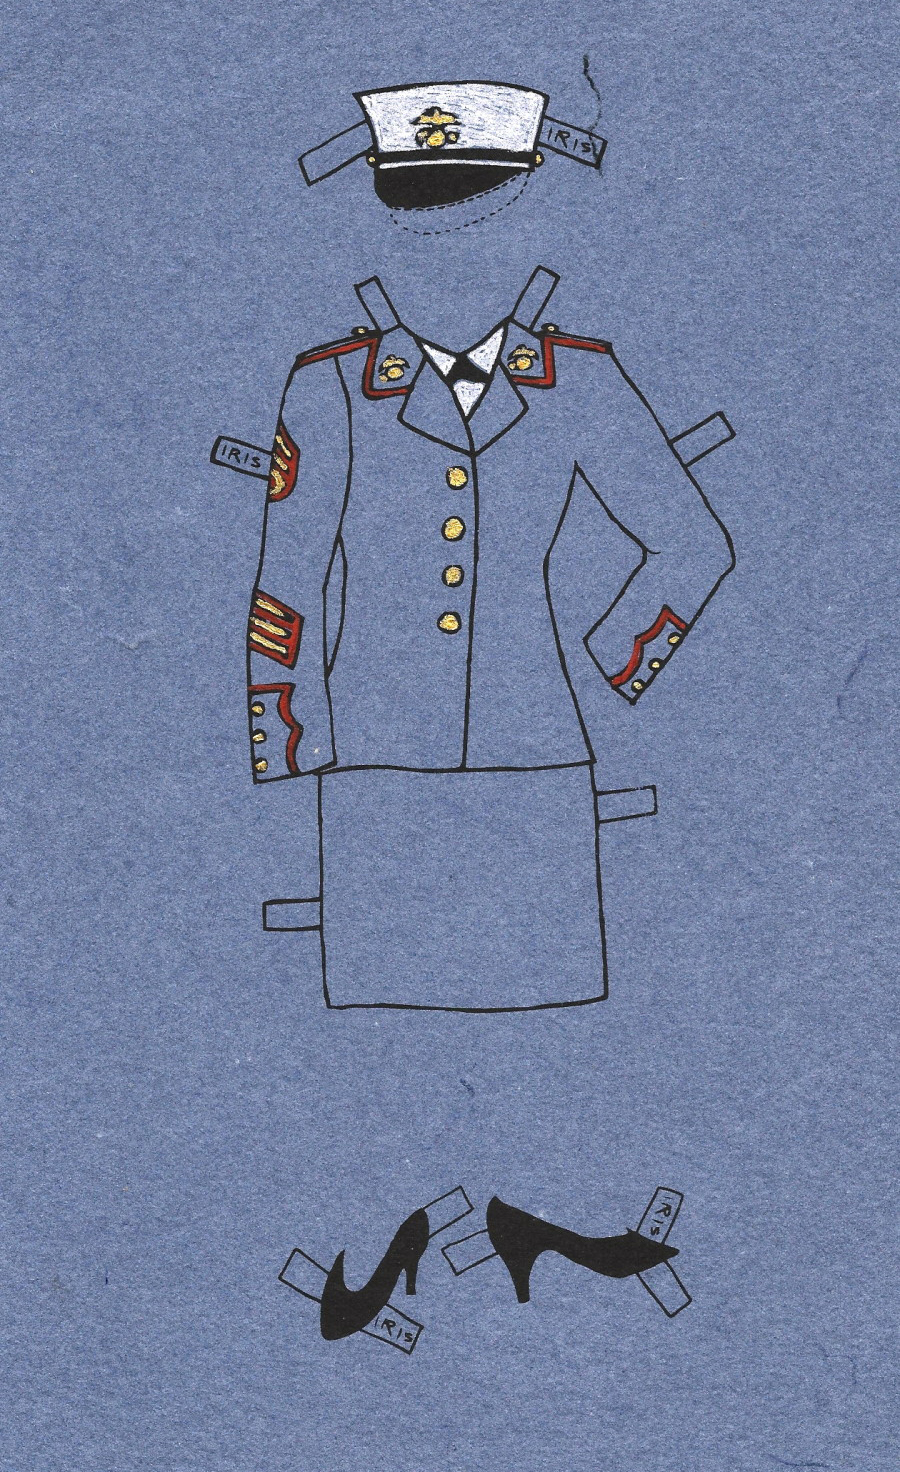 Paper doll illustration of woman's military outfit